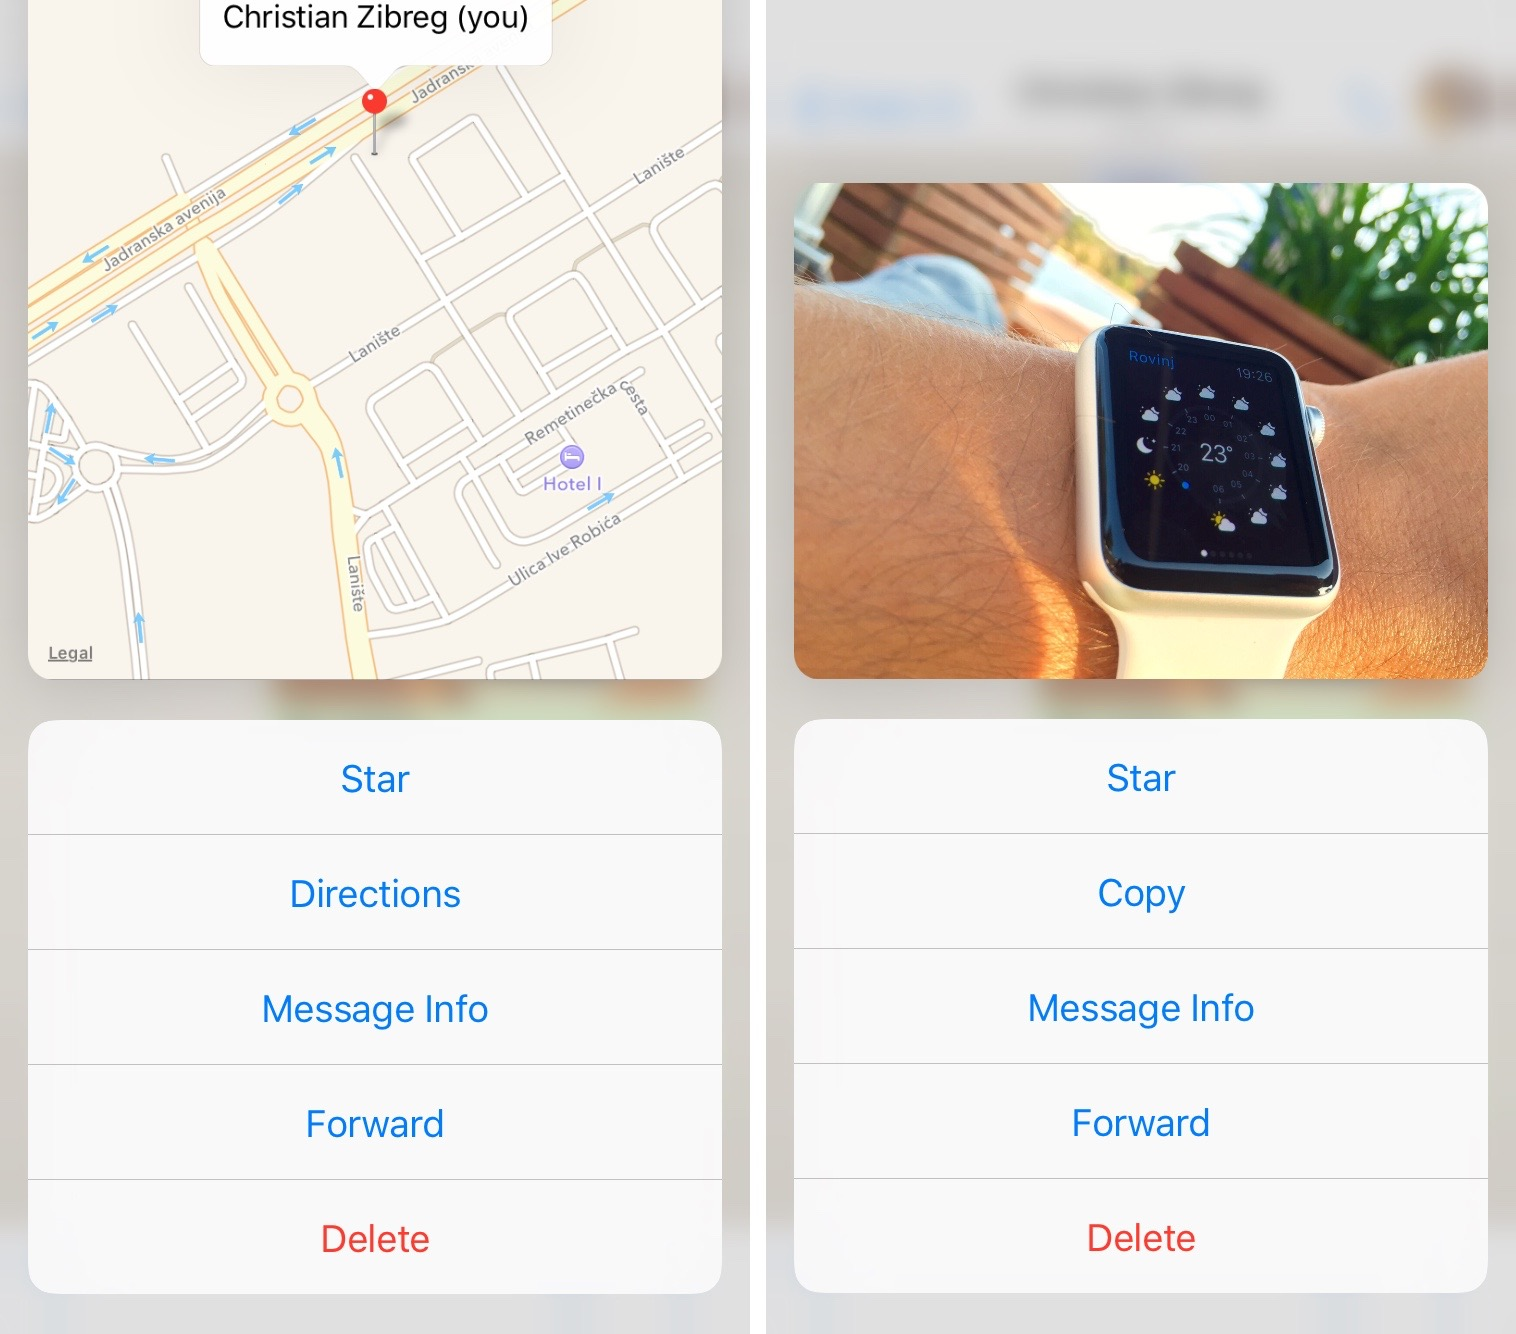 Top 10 iOS Applications Running New 3D Touch Technology - Image 11